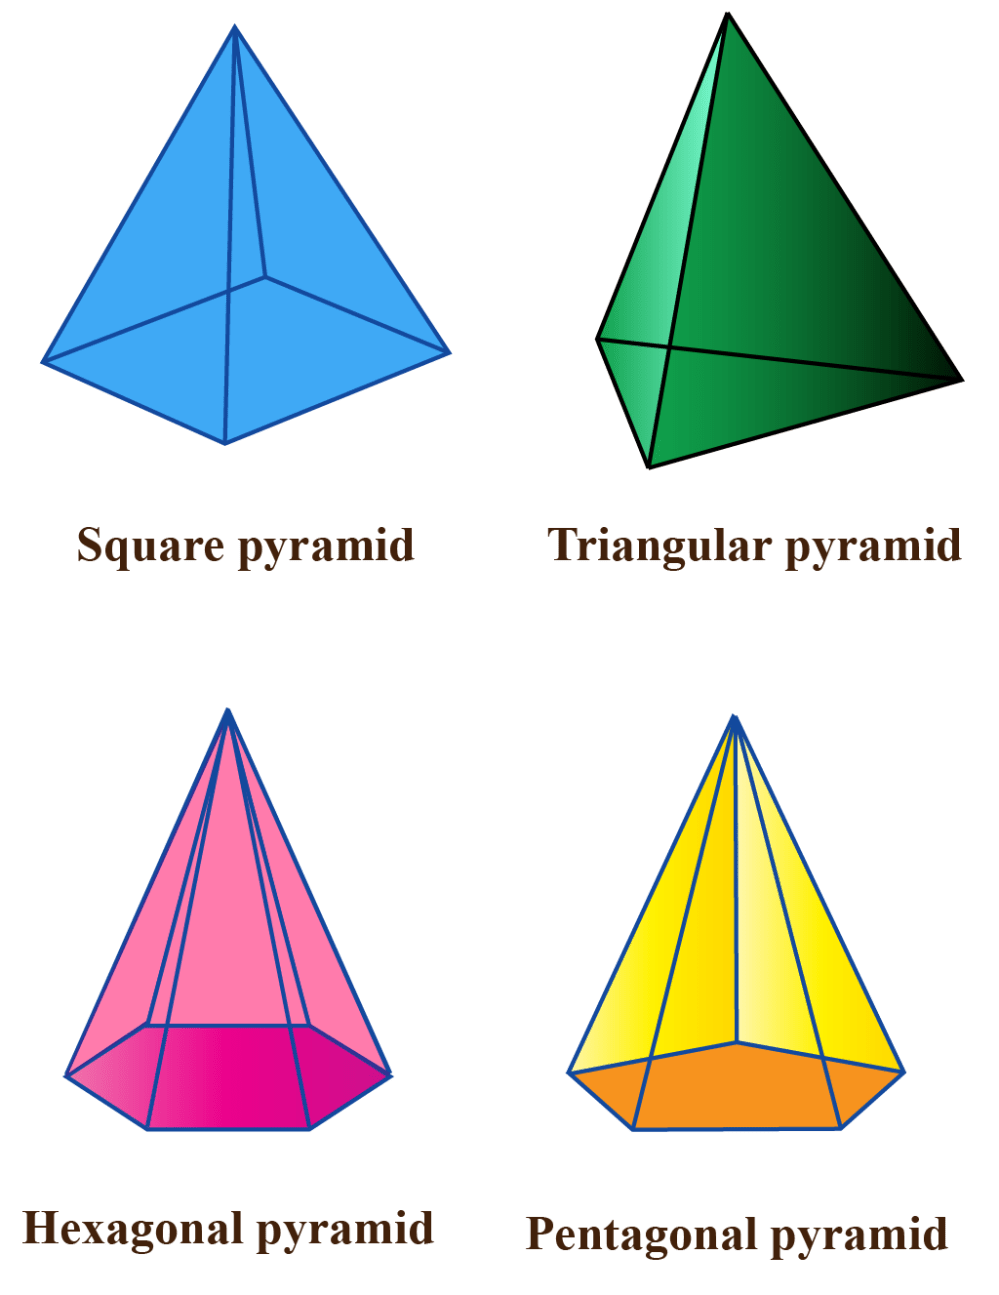 medium resolution of 3D Shapes - Three Dimensional Shapes   Definition